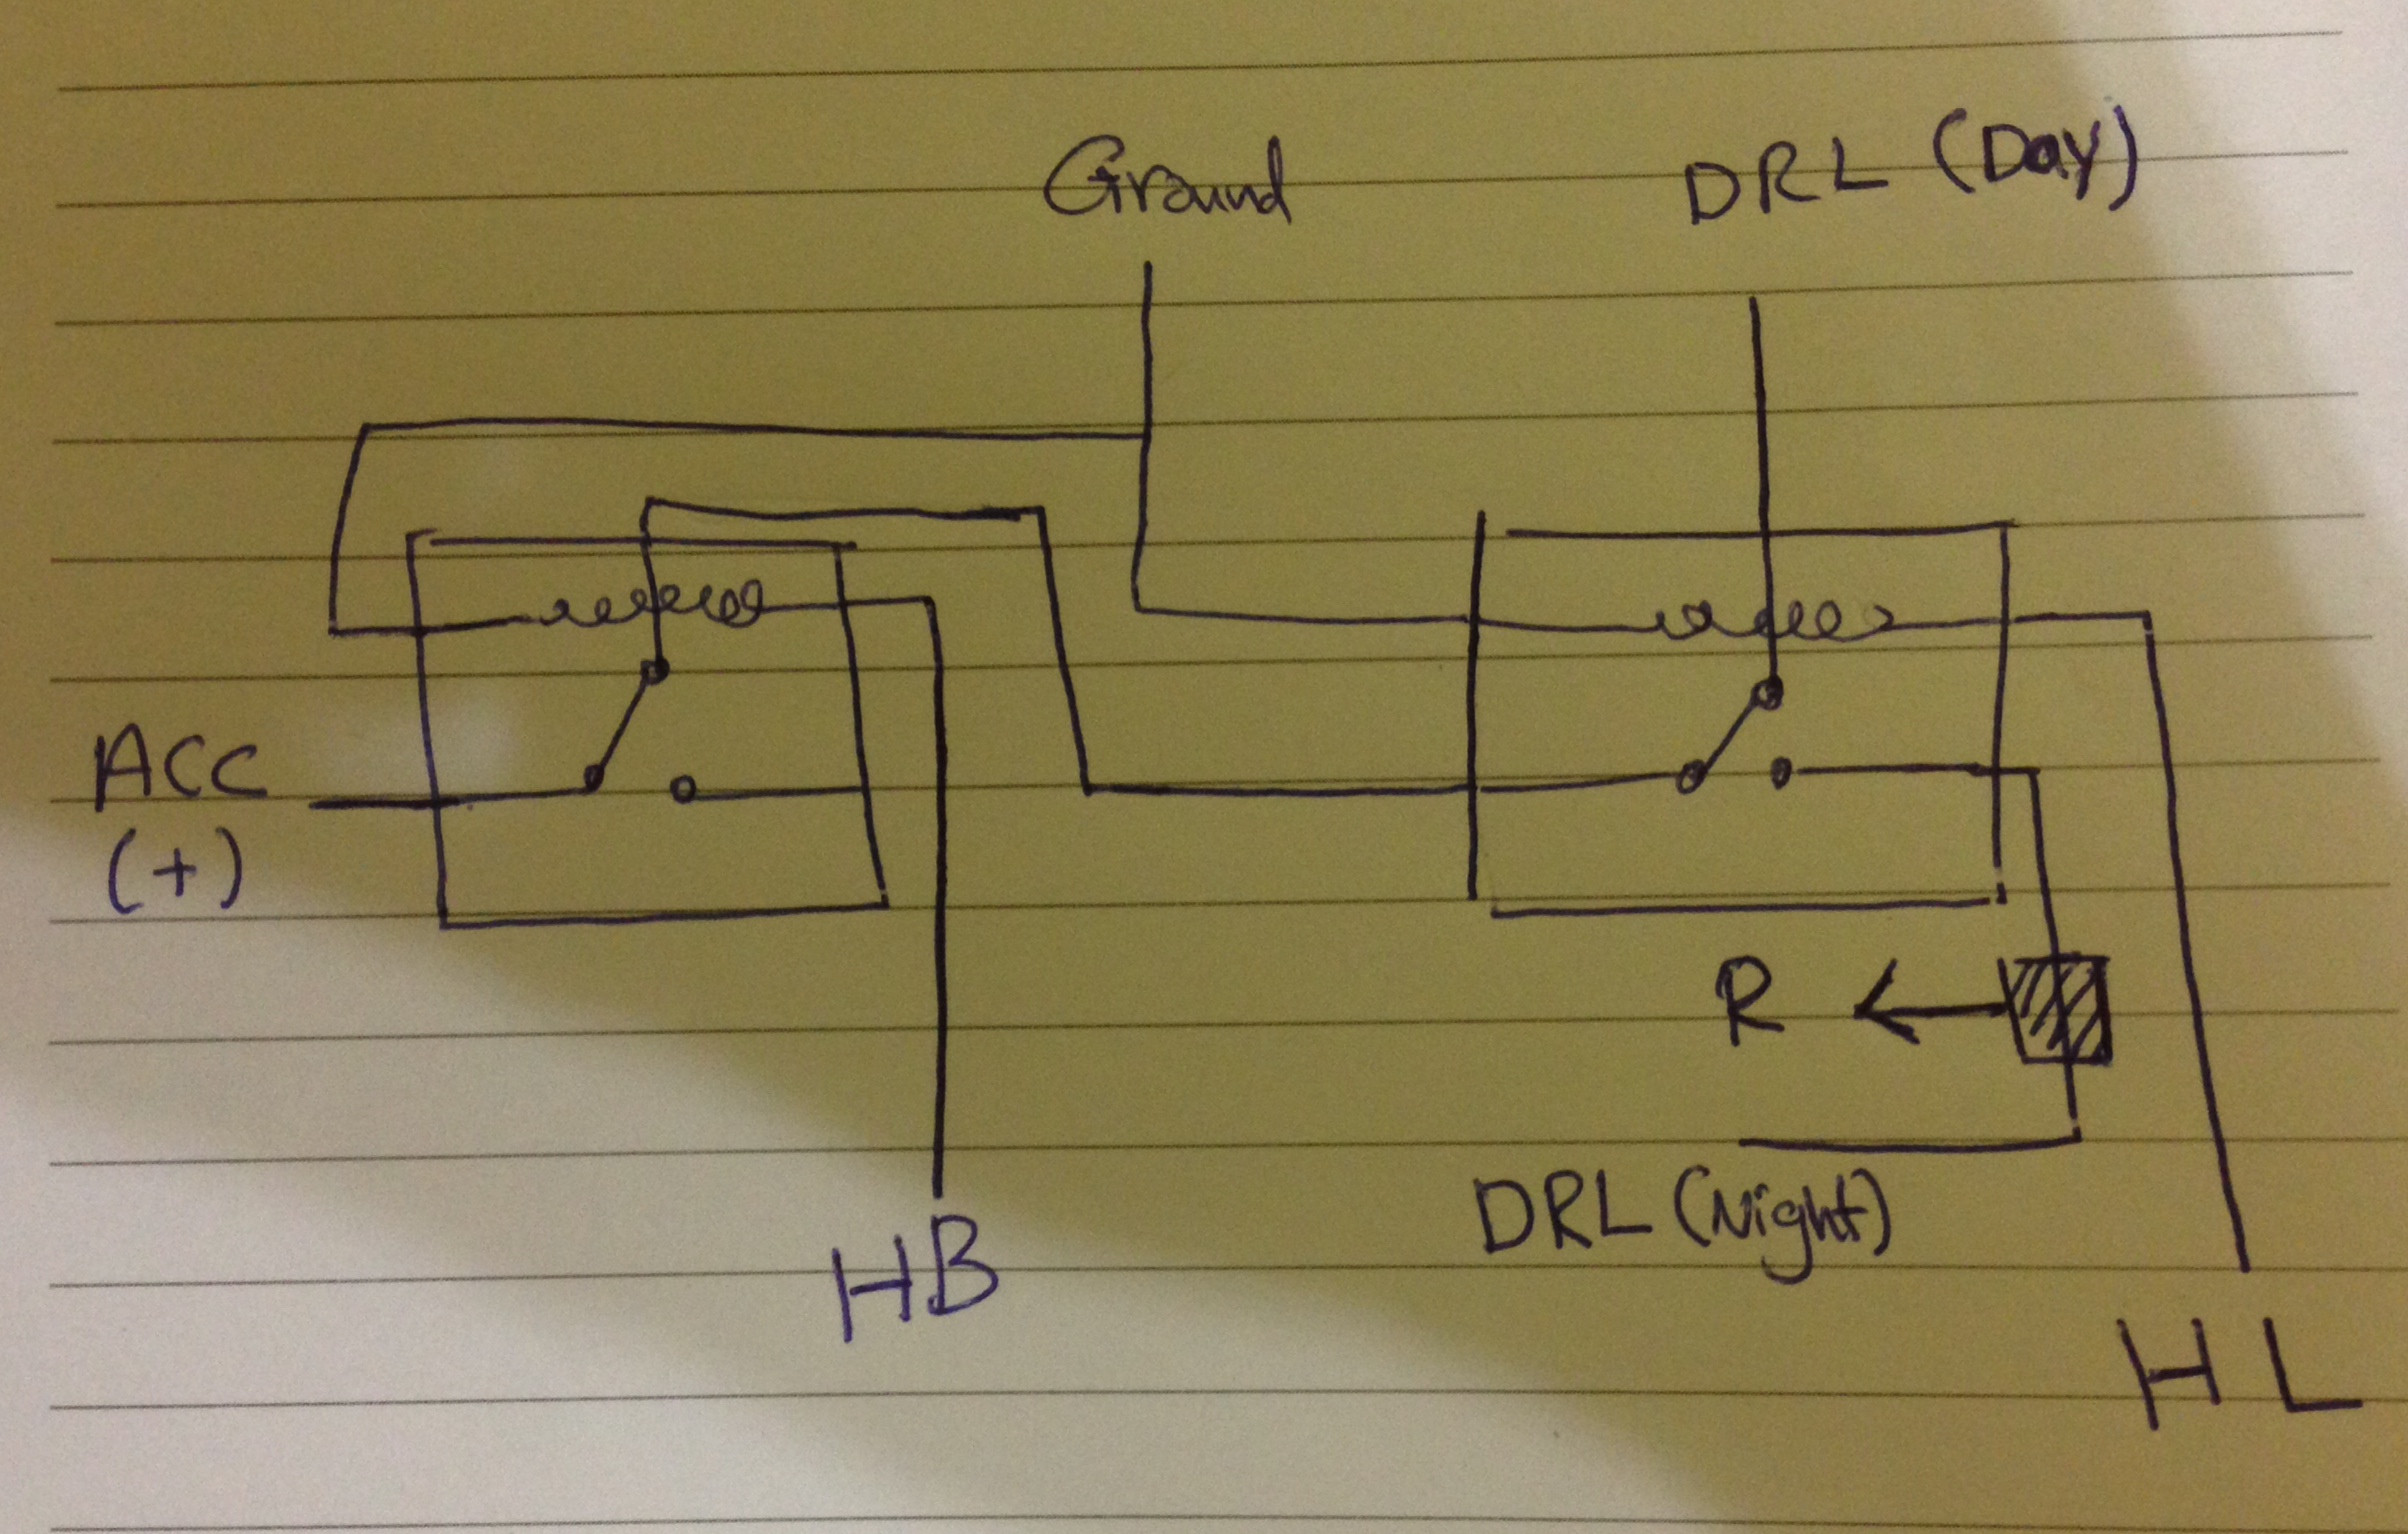 Two Relays For DRL On A Car